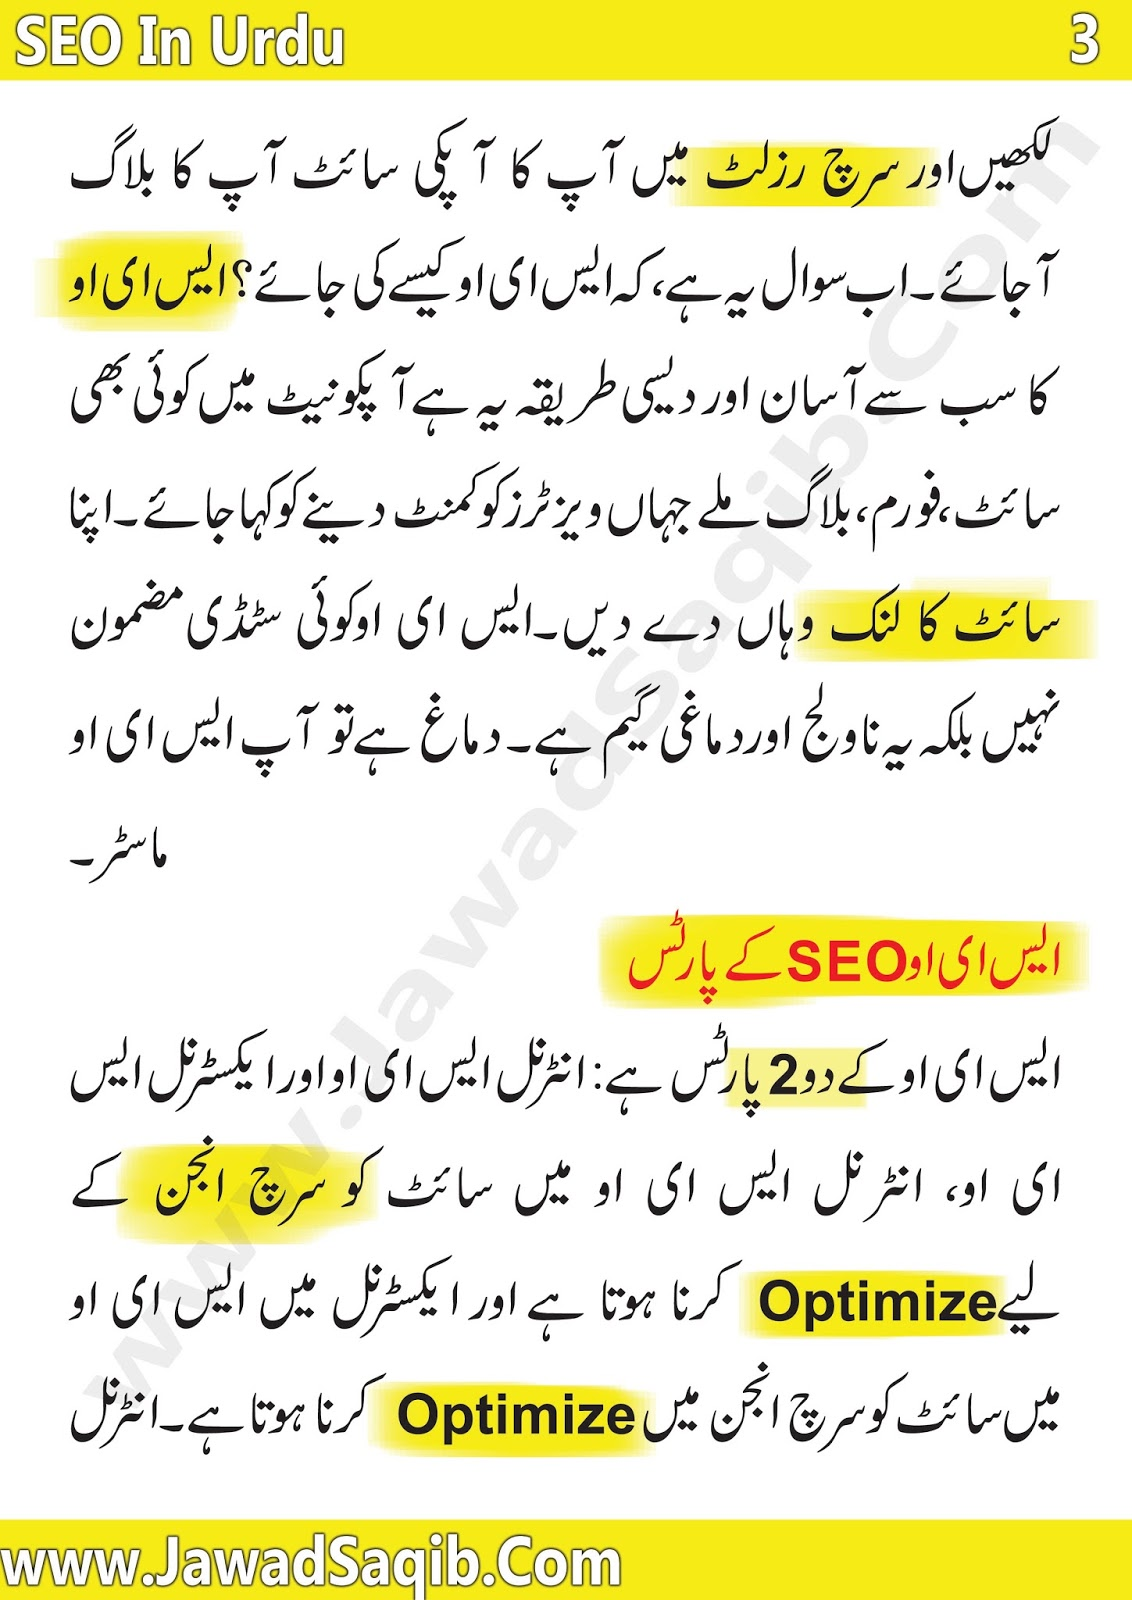 seo training in urdu